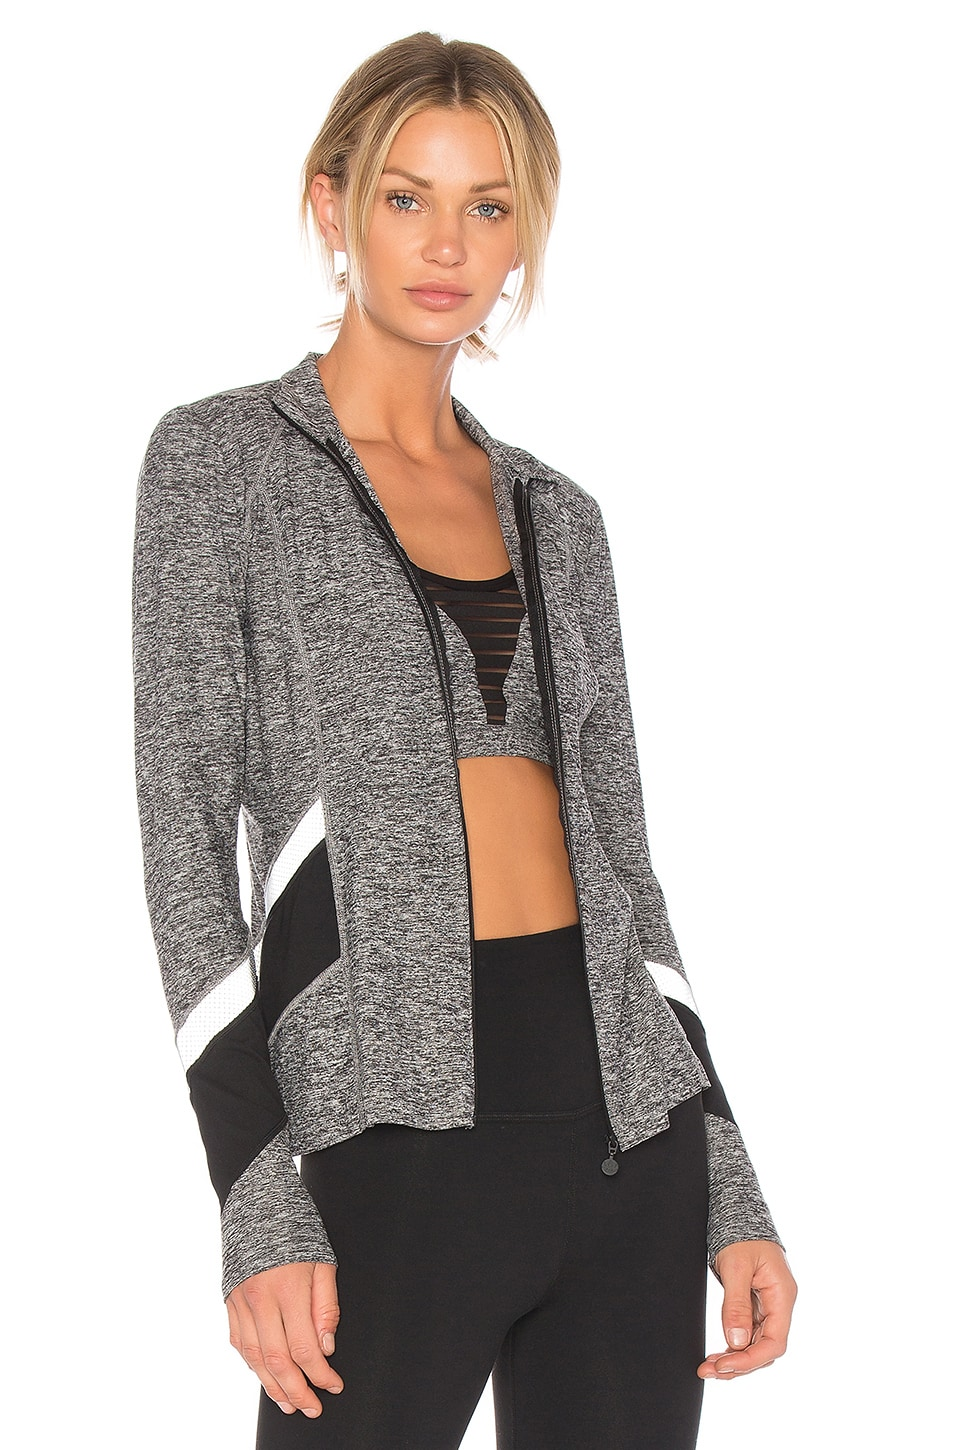 Refraction Jacket by Beyond Yoga